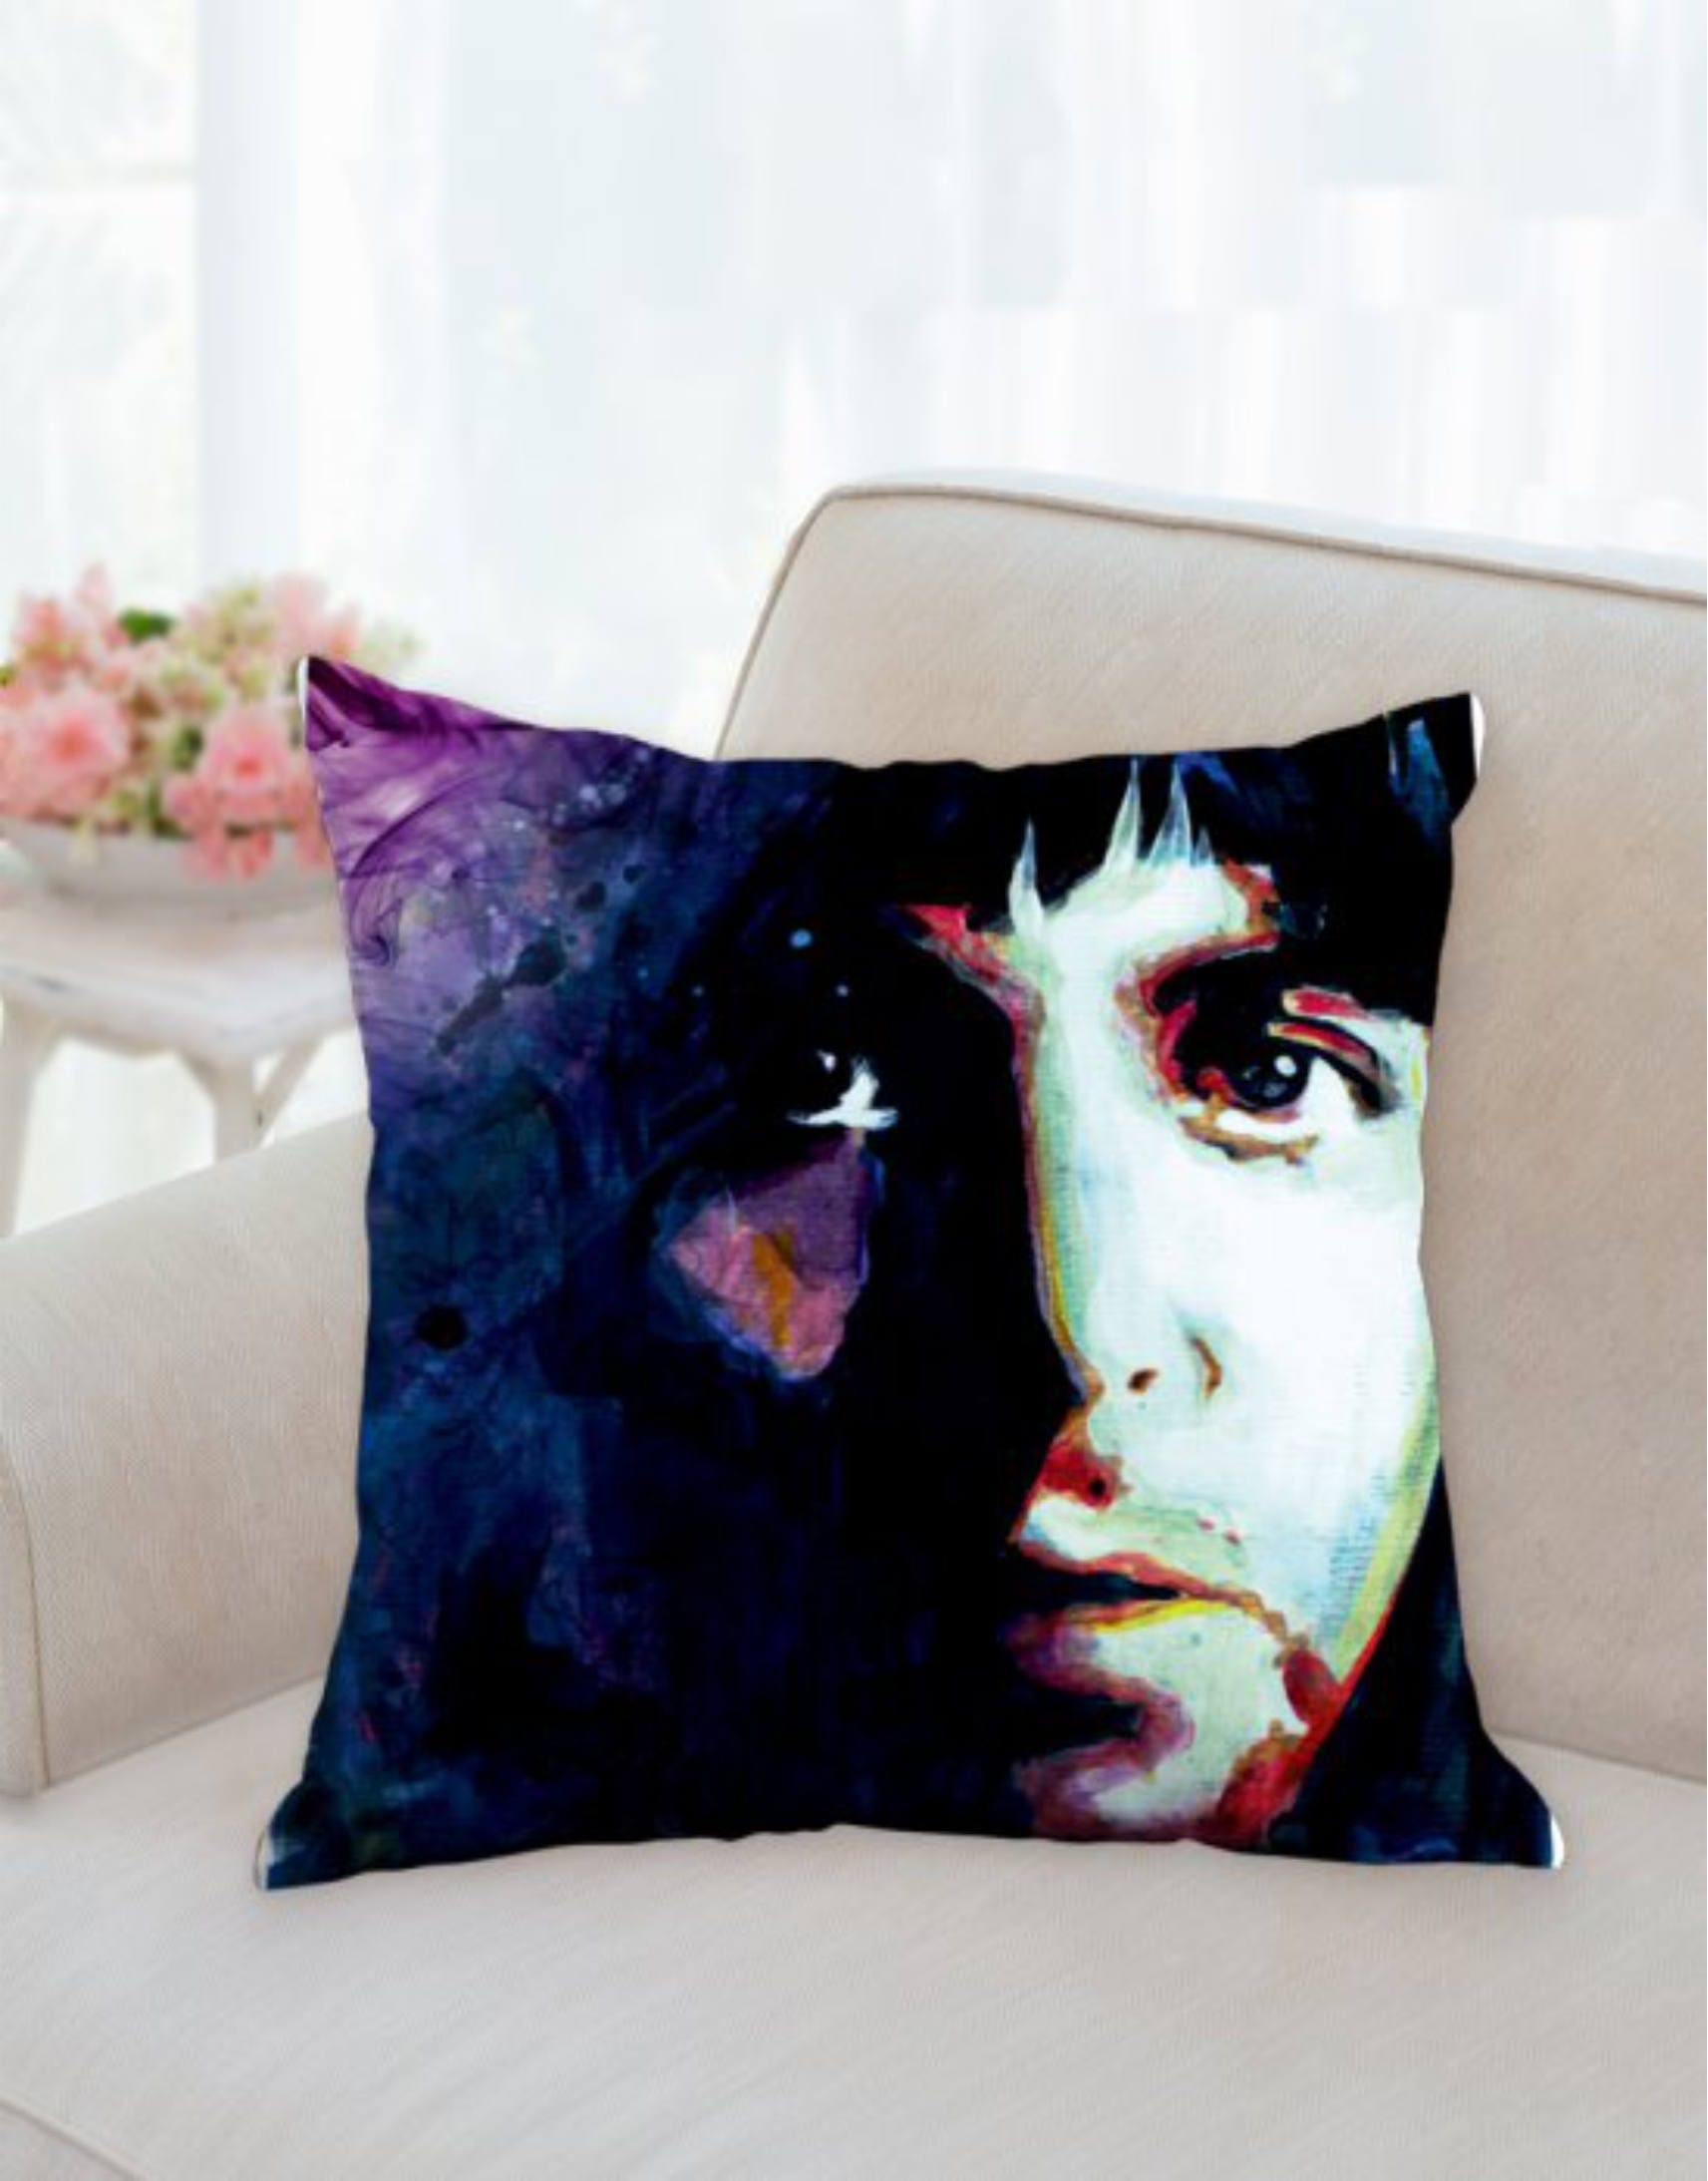 beatles pillow beatles cushion poul mccartney pillow beatles gift beatles decor beatles pillow cases the beatles pillow designer cushion